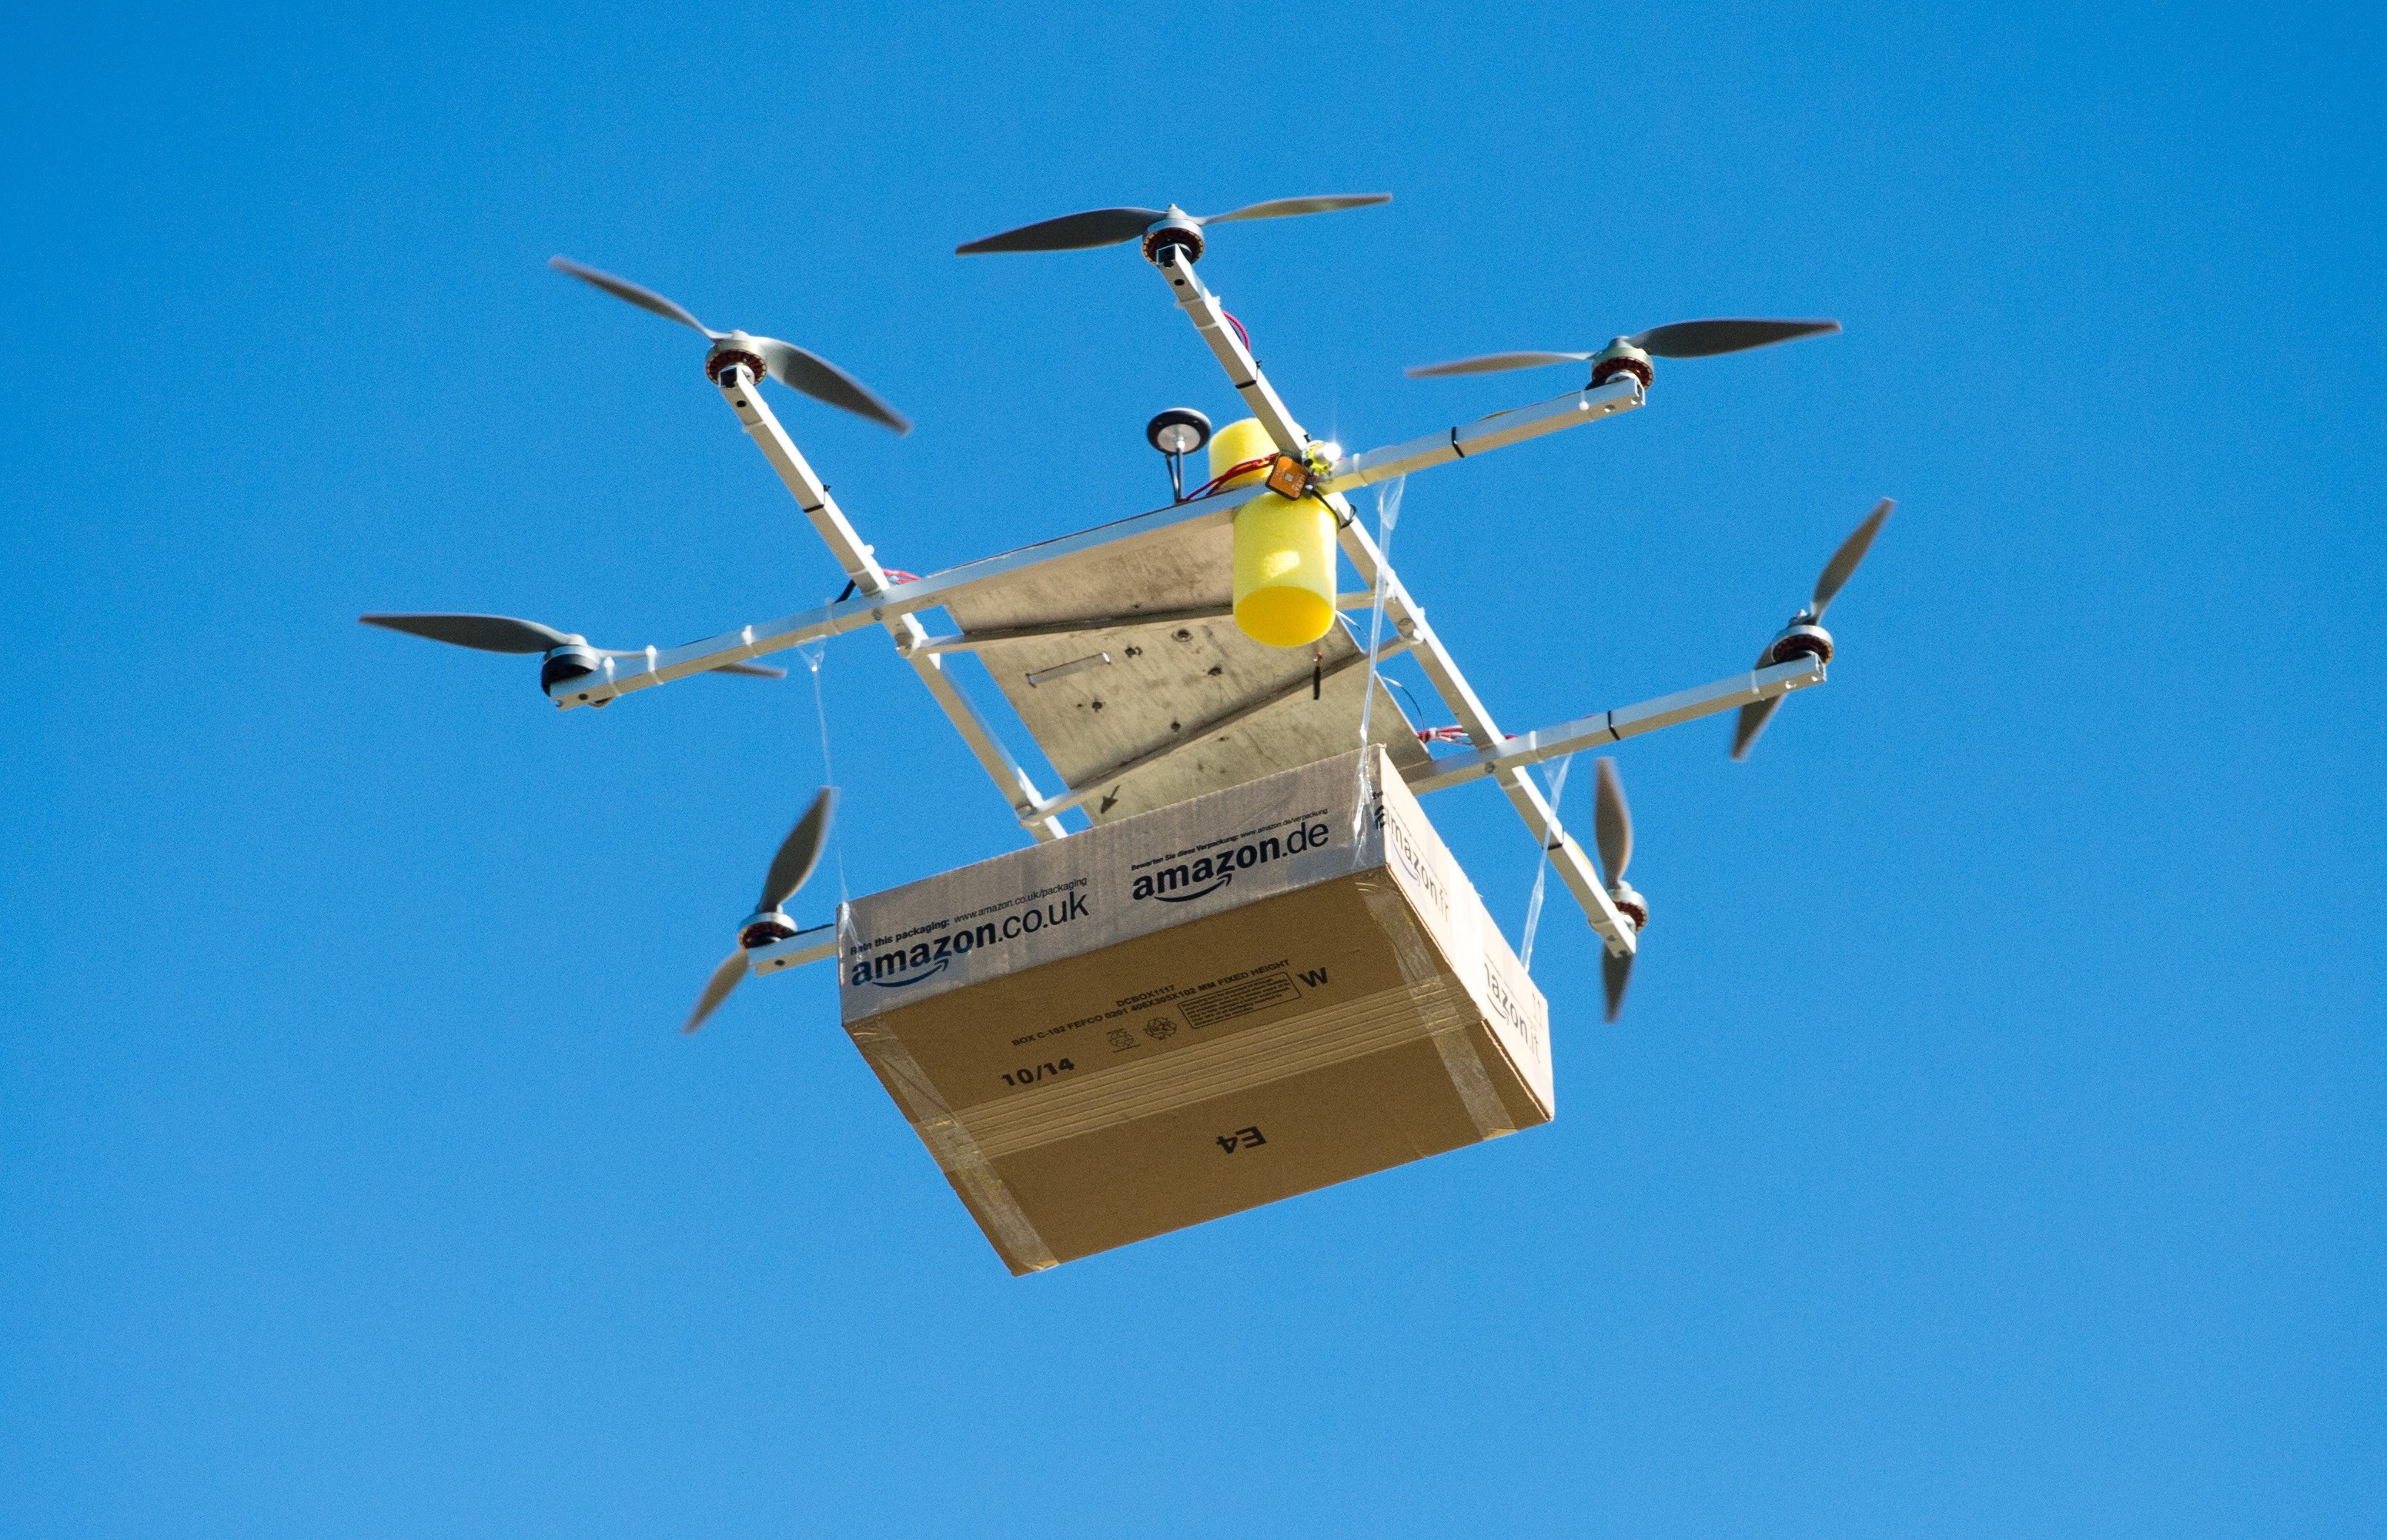 A drone with an Amazon package floats in front of the Amazon logistics center in Leipzig, Germany on Oct 28, 2014.